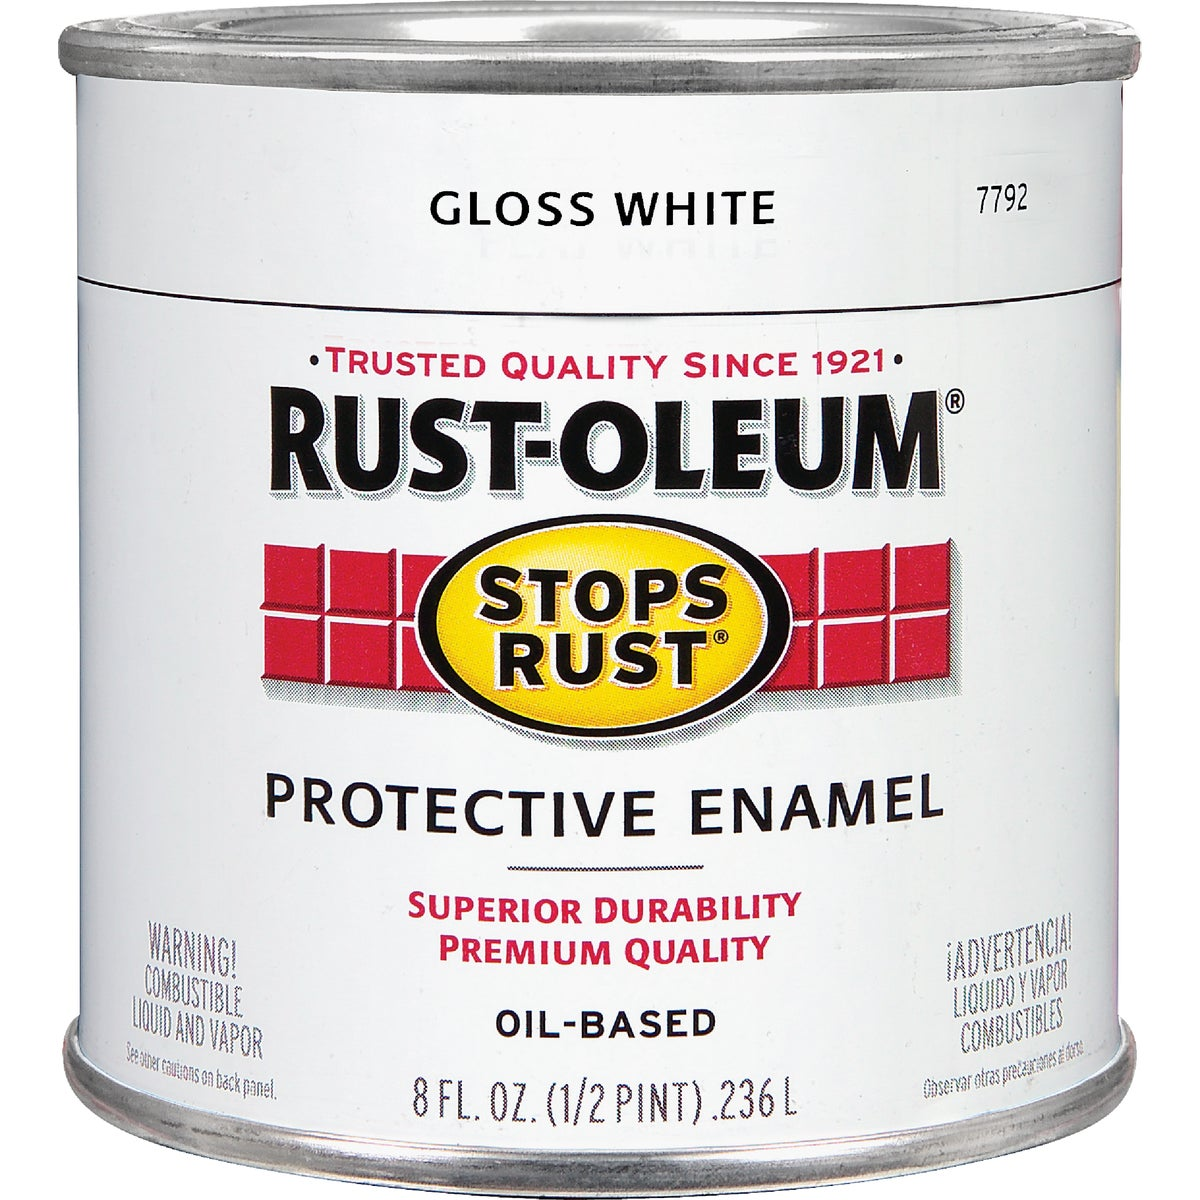 WHITE ENAMEL - 7792-730 by Rustoleum